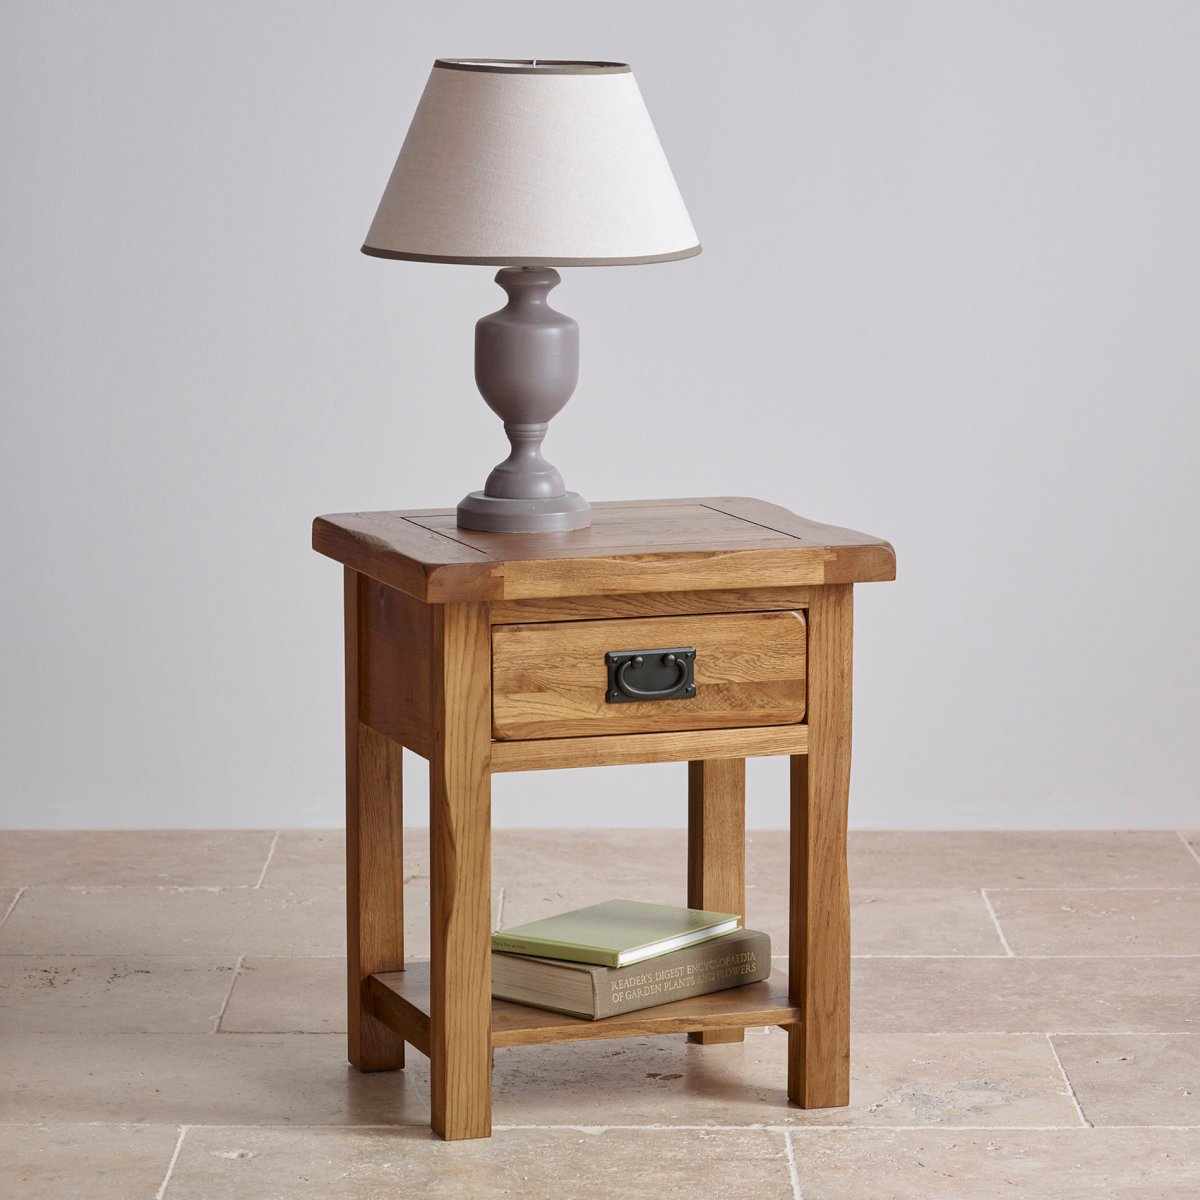 Oak Lamp Table 60cm High Original Rustic Lamp Table In Solid Oak Oak Furniture Land